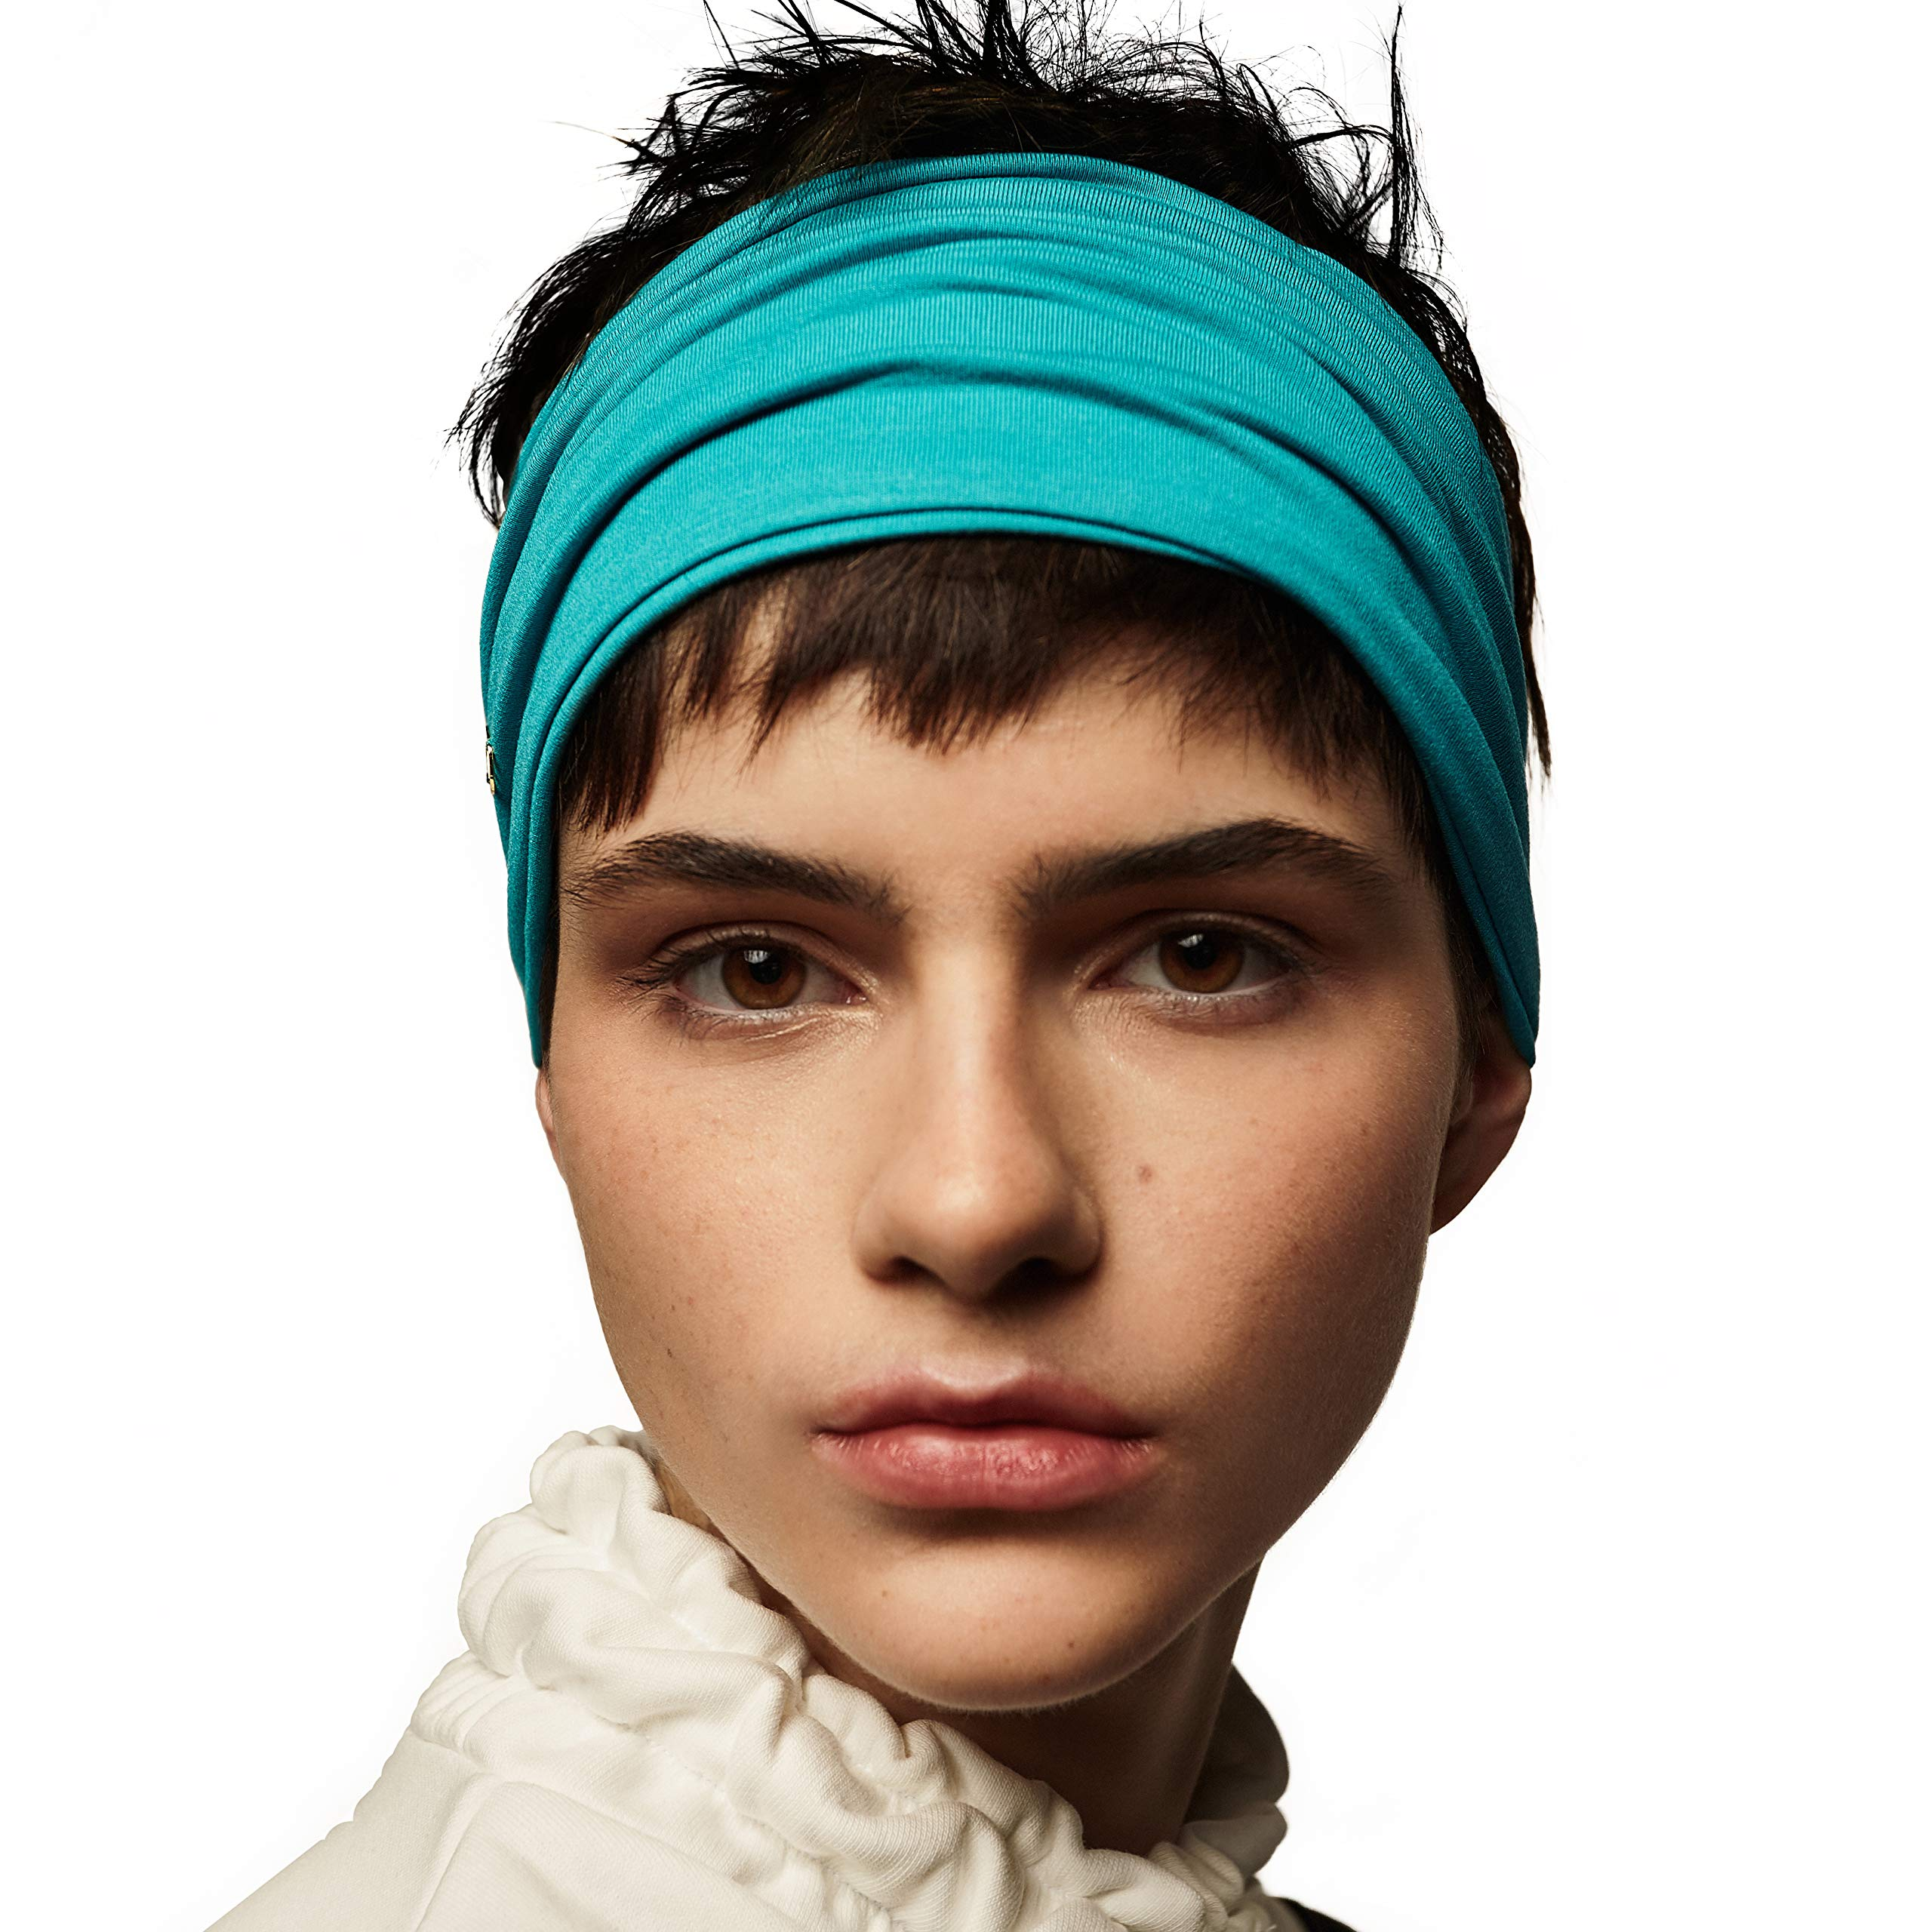 """BLOM Original Headbands For Women. 6"""" Multi Style Design for Yoga Workout Running Athletic. Wear Wide Turban Knotted. Ethically Made in Bali."""